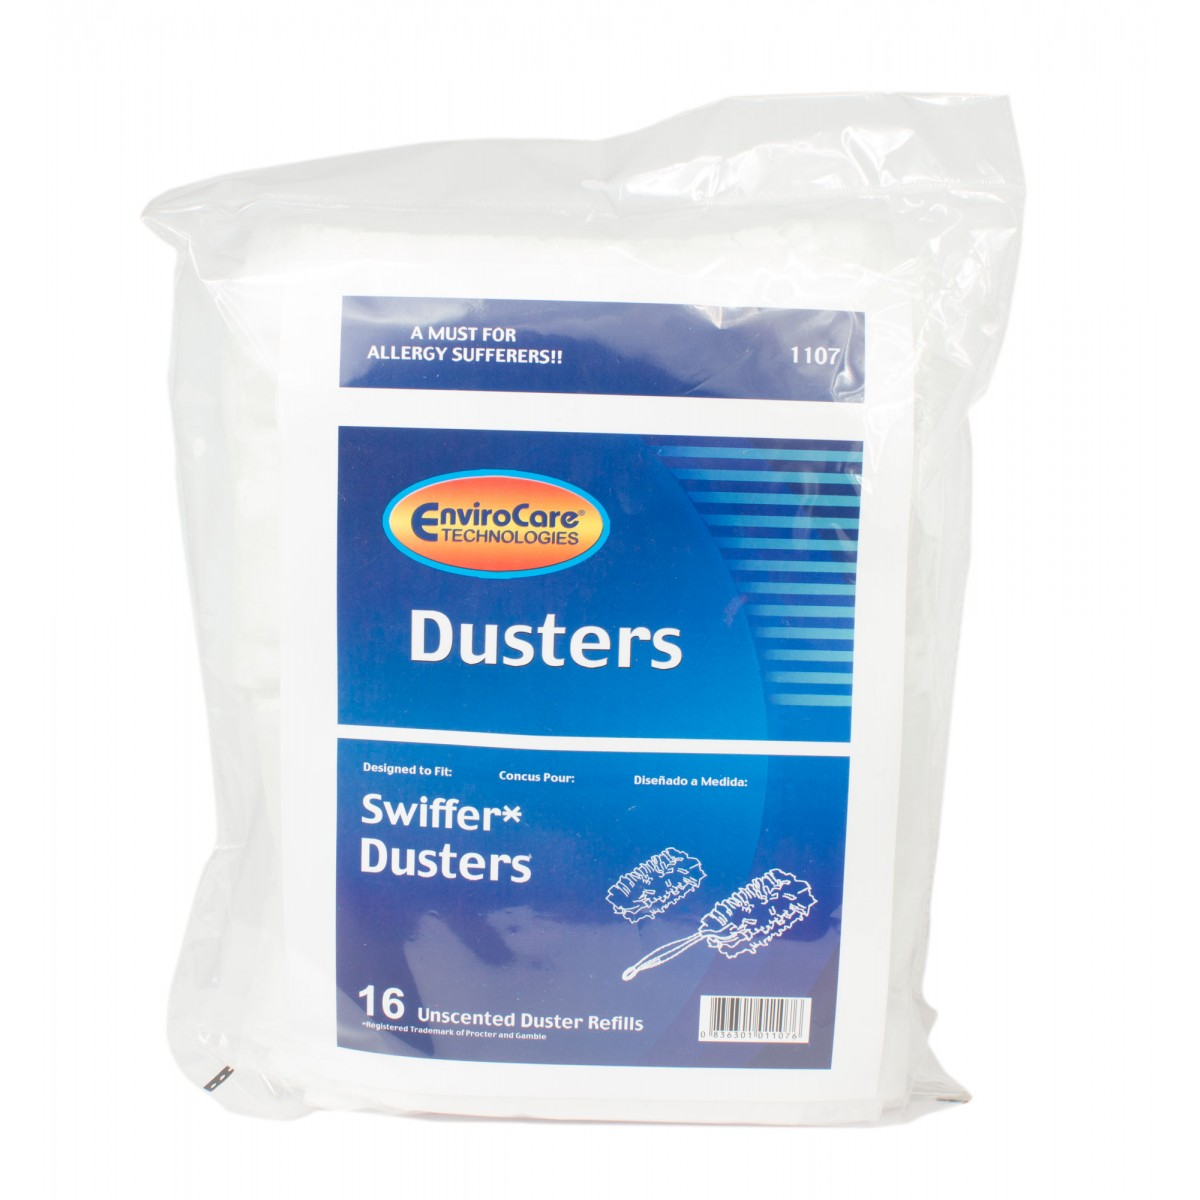 Unscented Duster Refills For Swiffer Dusters Pack Of 16